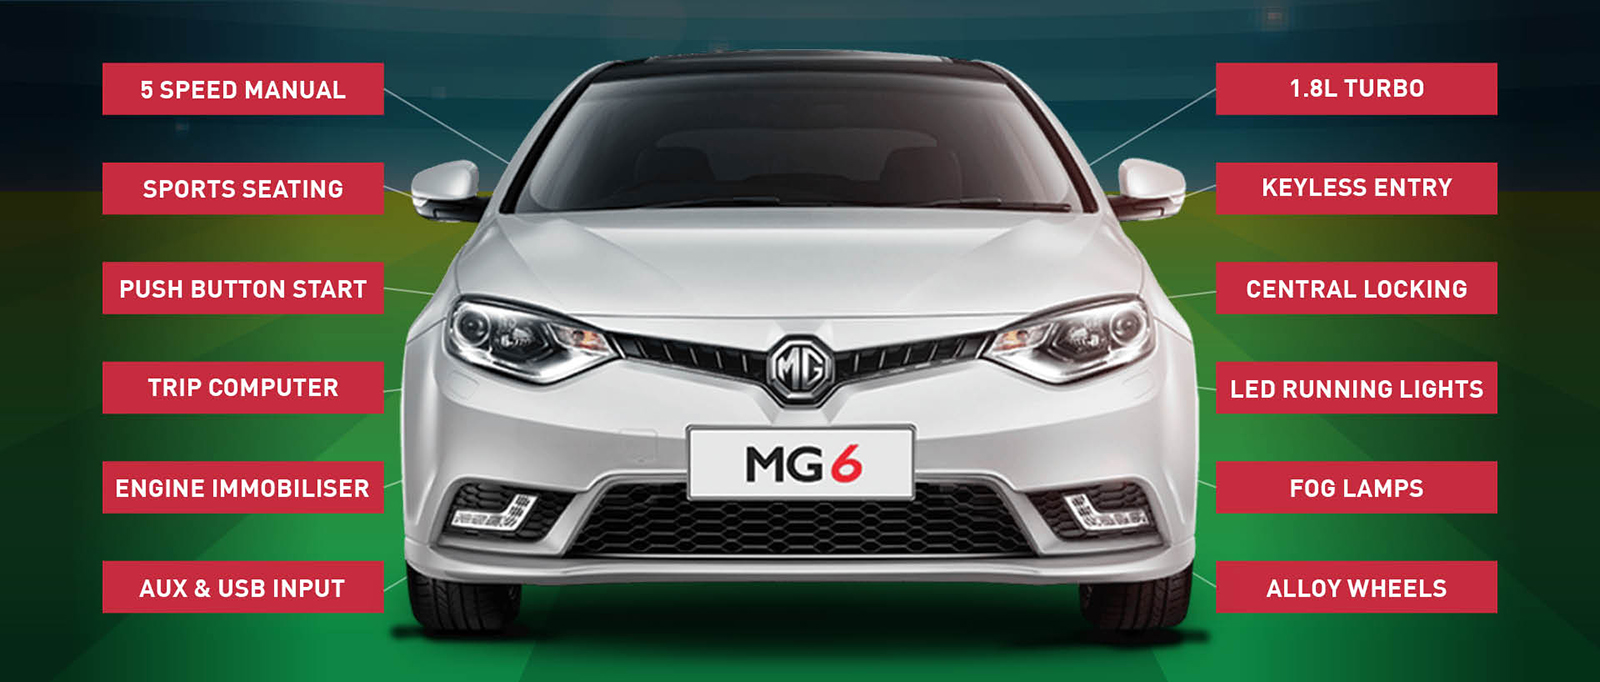 With all of the features of a luxury car, test drive an MG MG6 sedan today at Norris Used Cars Brisbane.